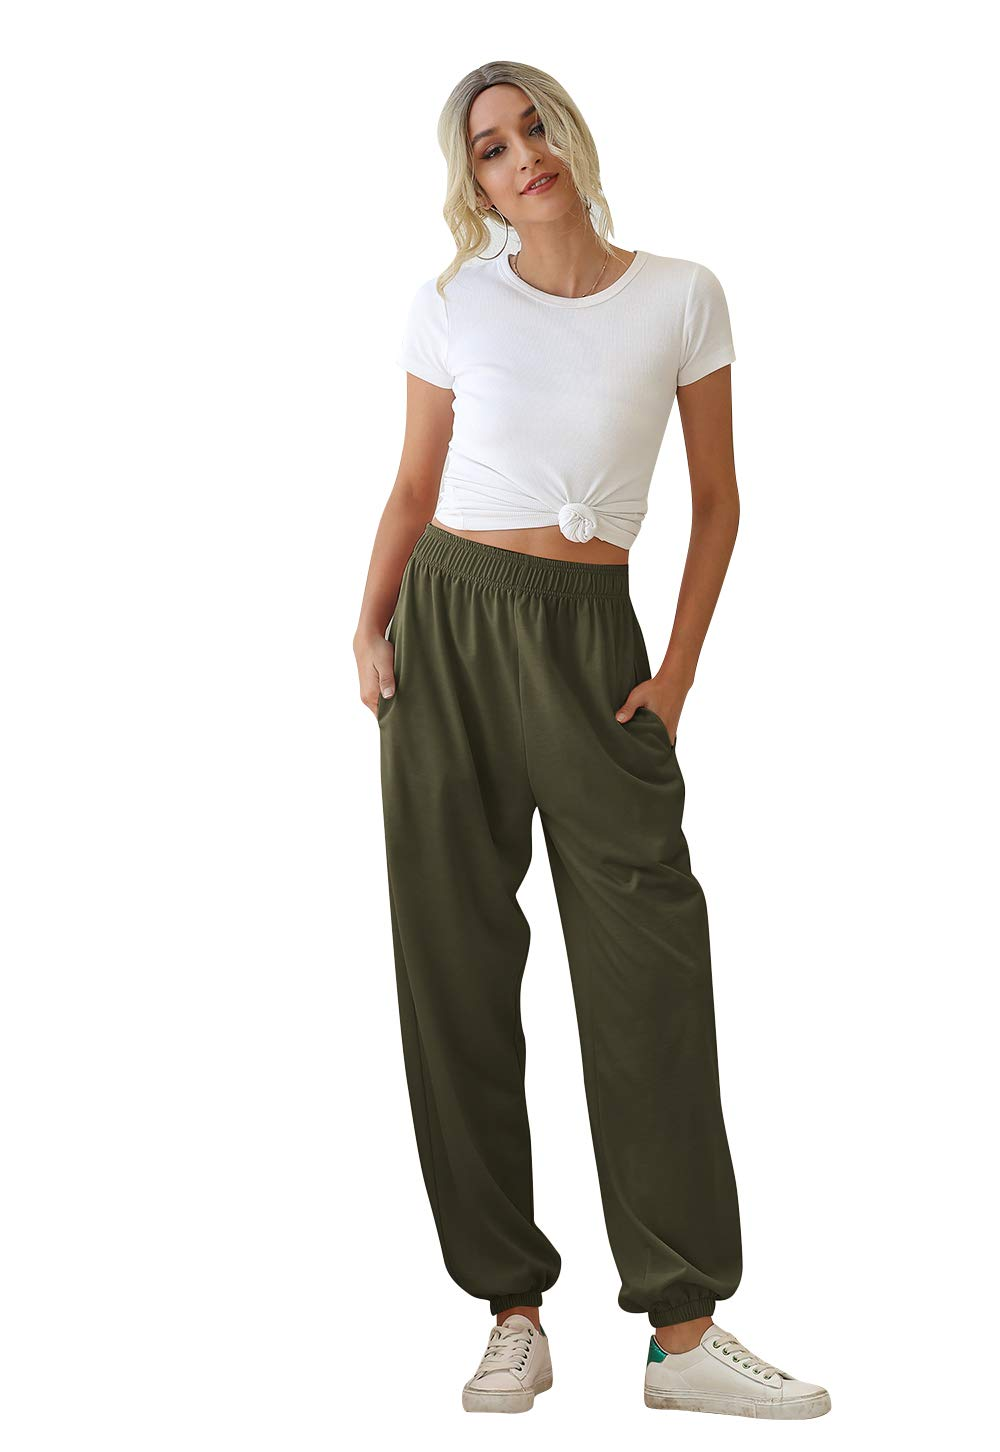 MHSLKER Women's Active High Waisted Sweatpants Joggers Lounge Pants Lightweight Baggy Workout Sportswear with Pockets